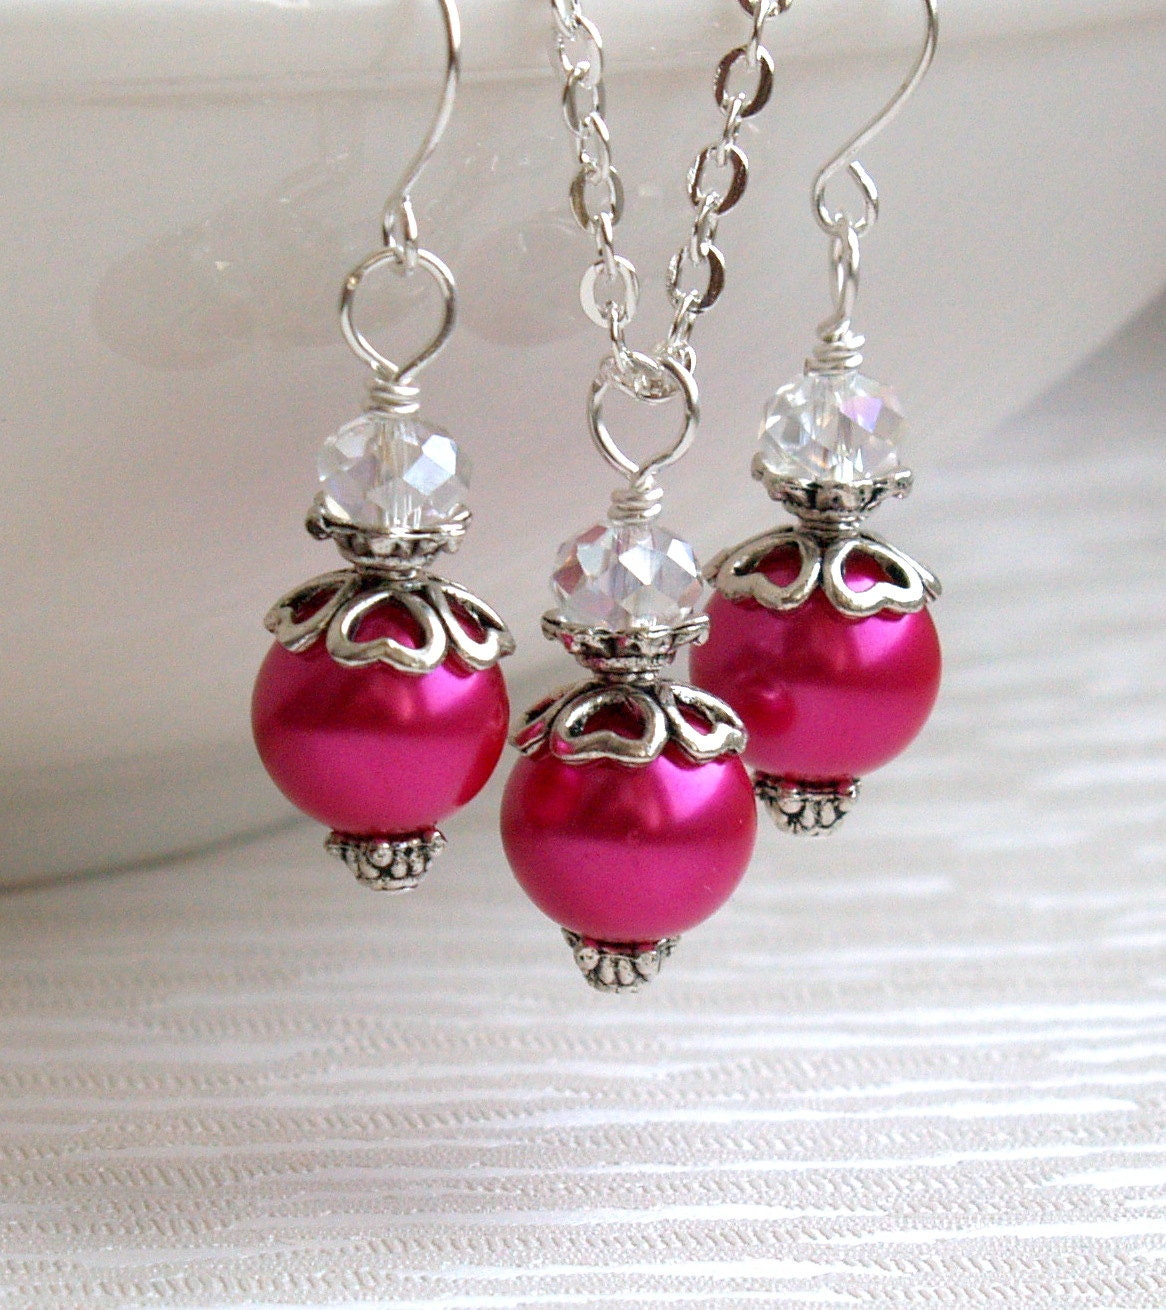 hot pink jewelry set set of necklace and earrings